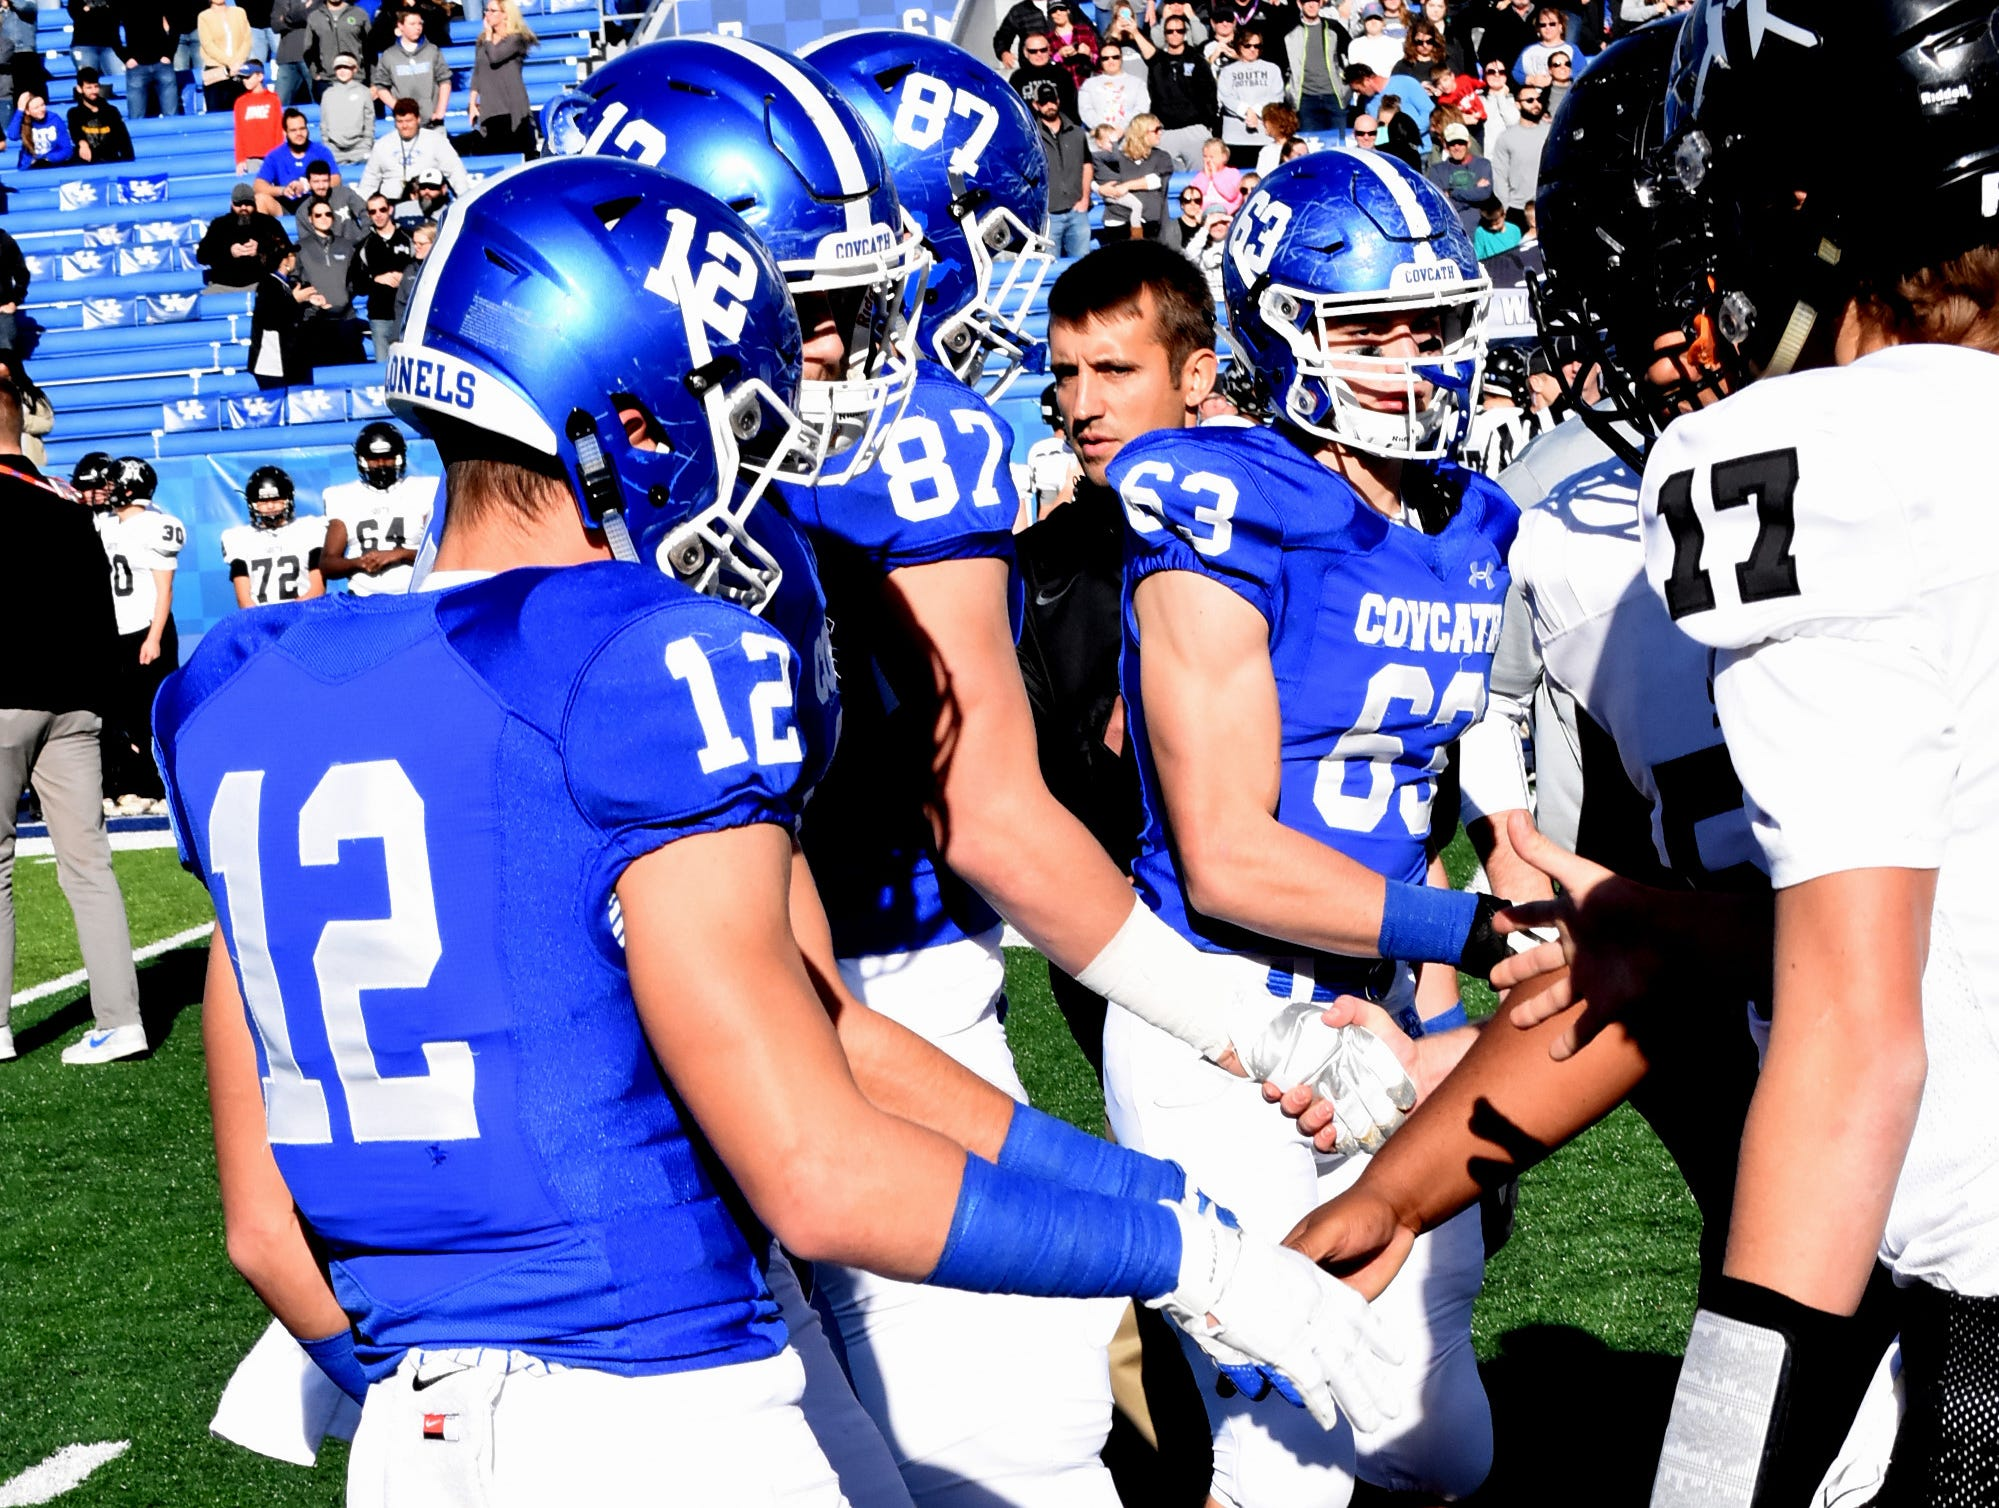 The captains of Covington Catholic shake hands with players from South Waren prior to the start of the 2018 KHSAA 5A State Football Championship, December 2, 2018.